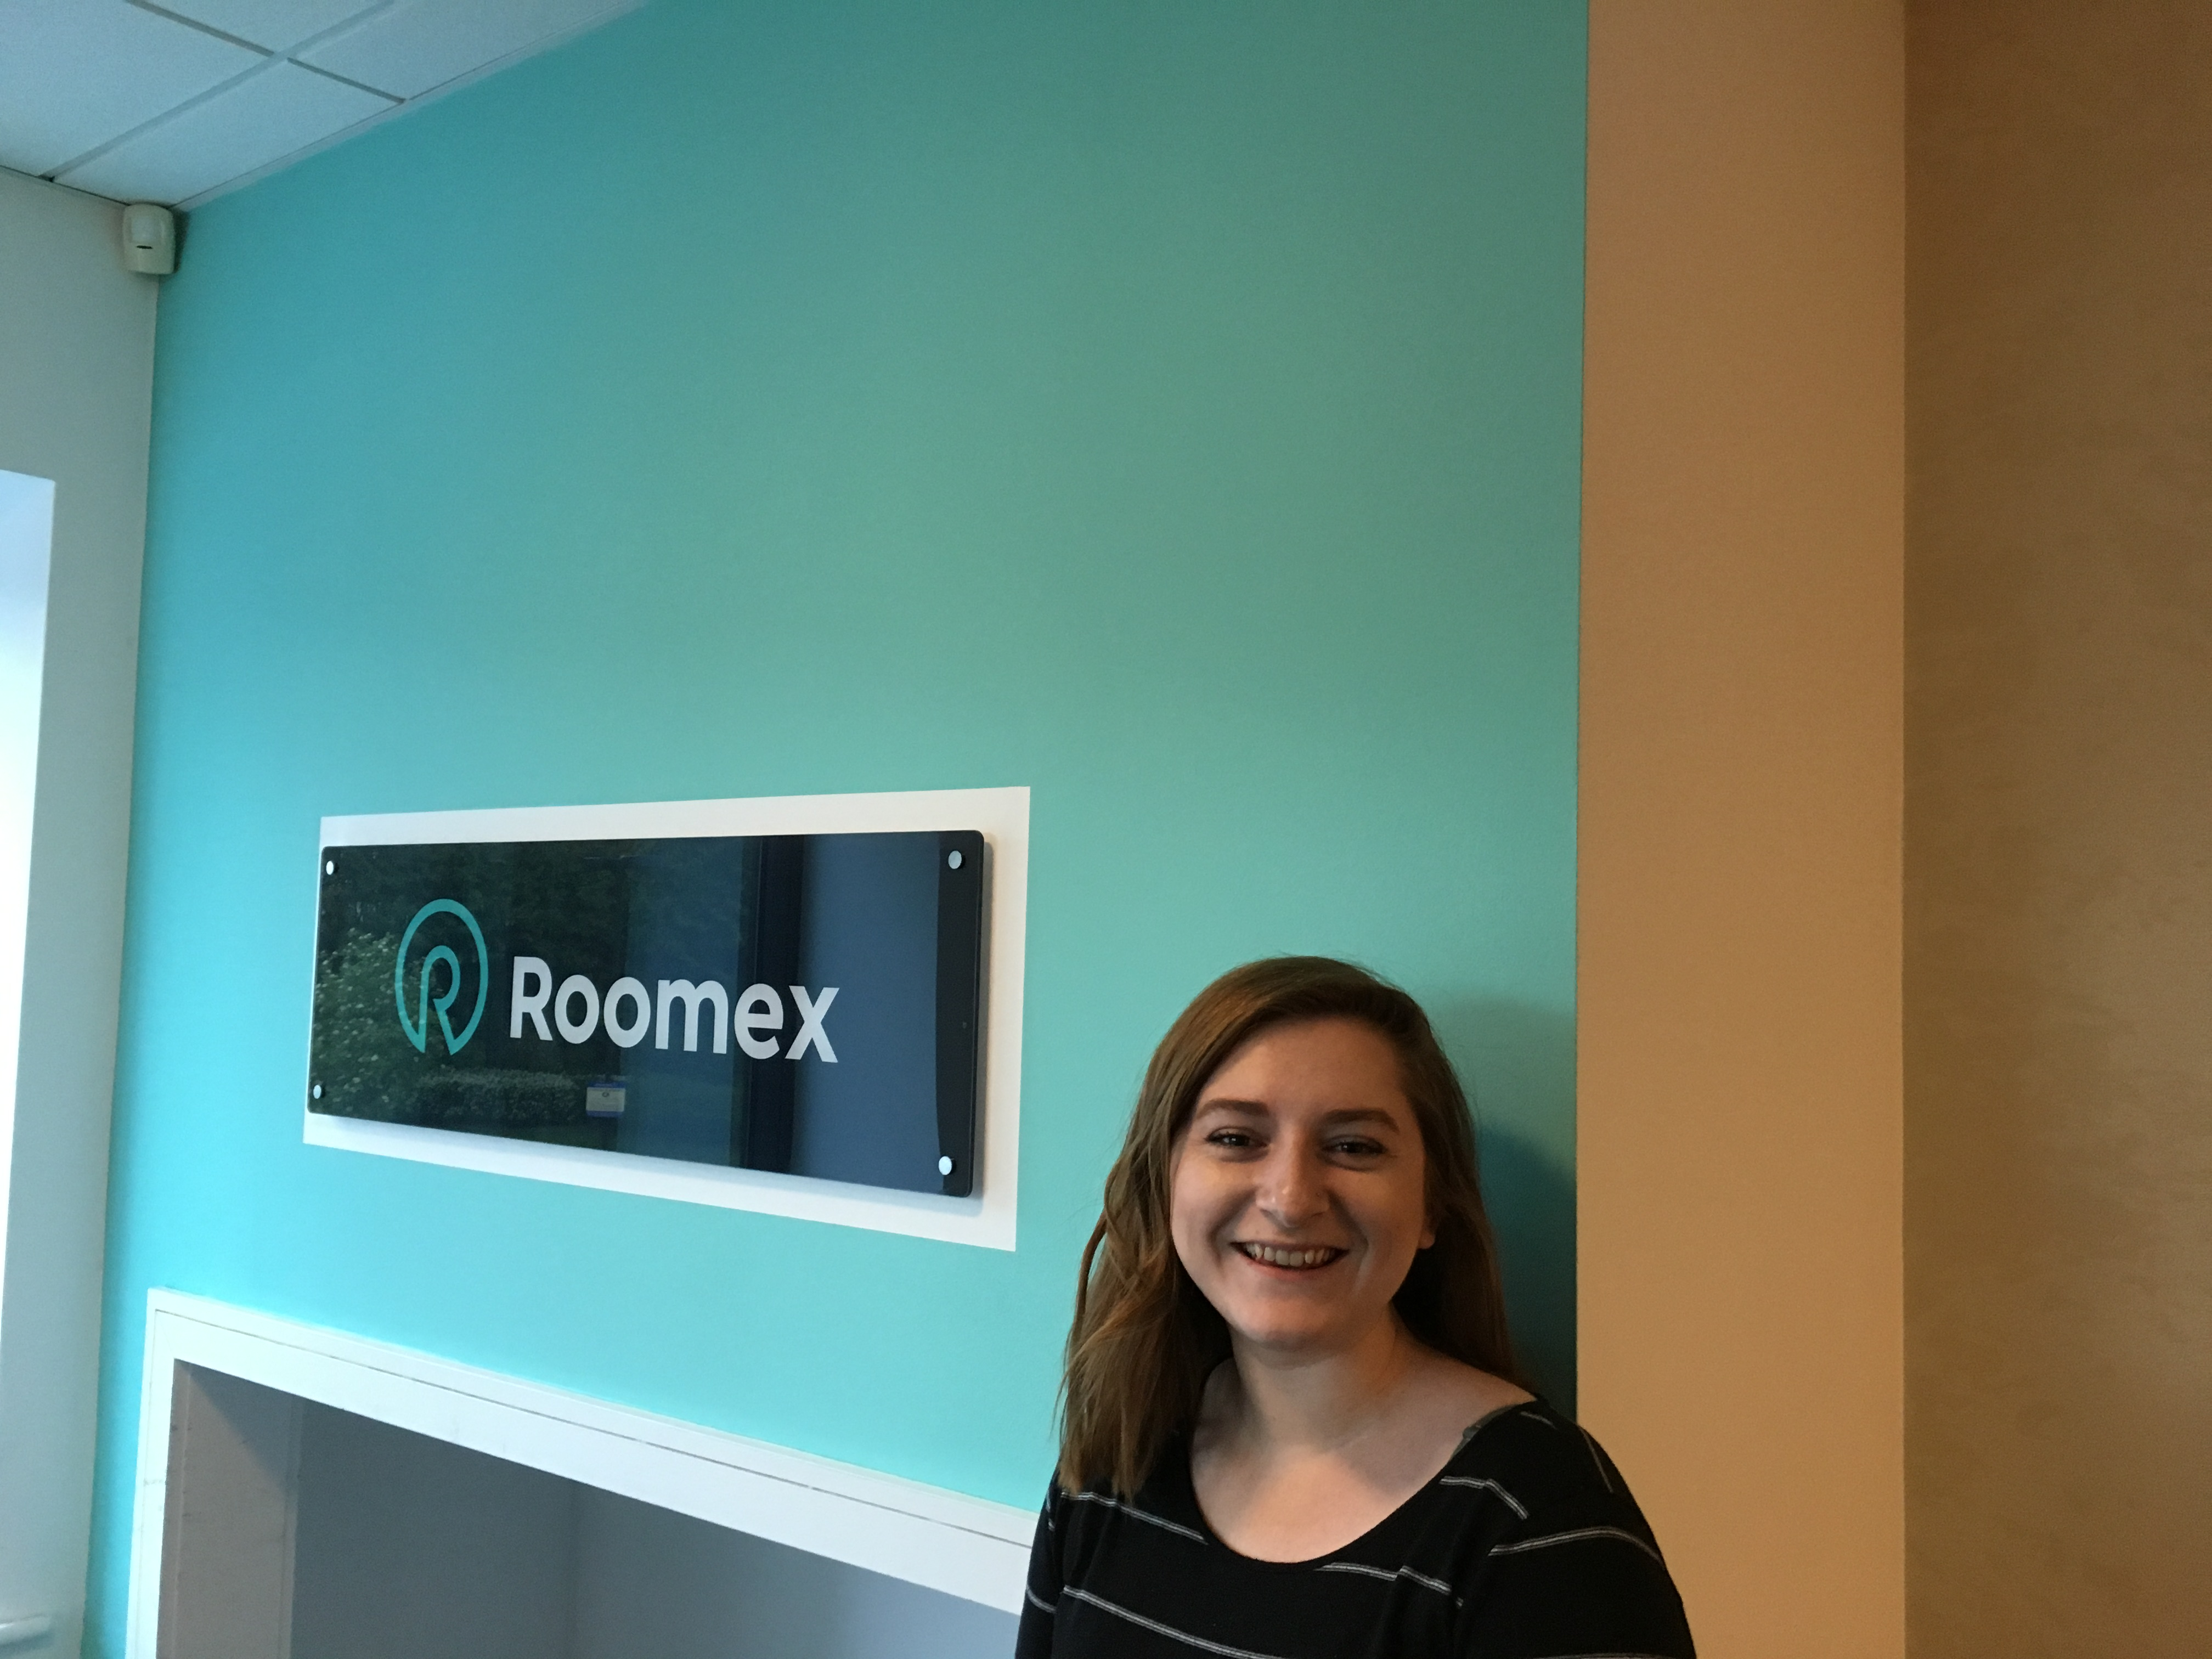 Coffeebreak chat with Amanda Middleton, Roomex Operations Executive